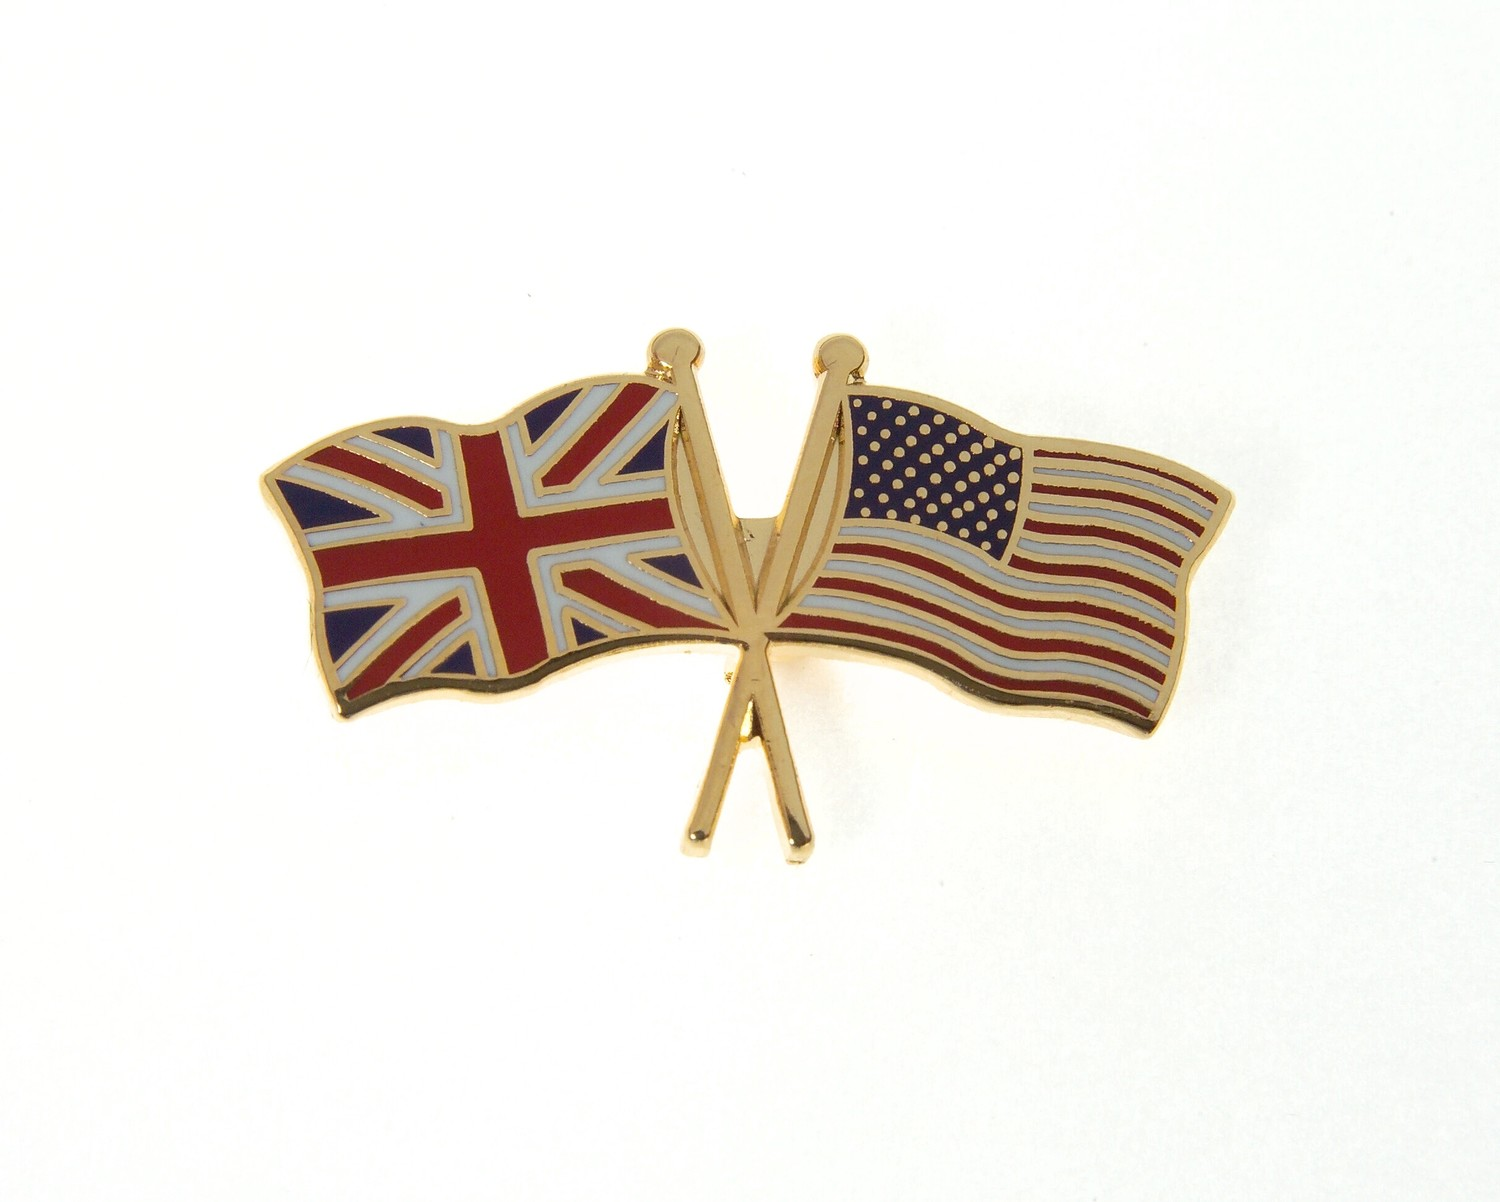 UK / US Crossed Flags Tie / Lapel Pin